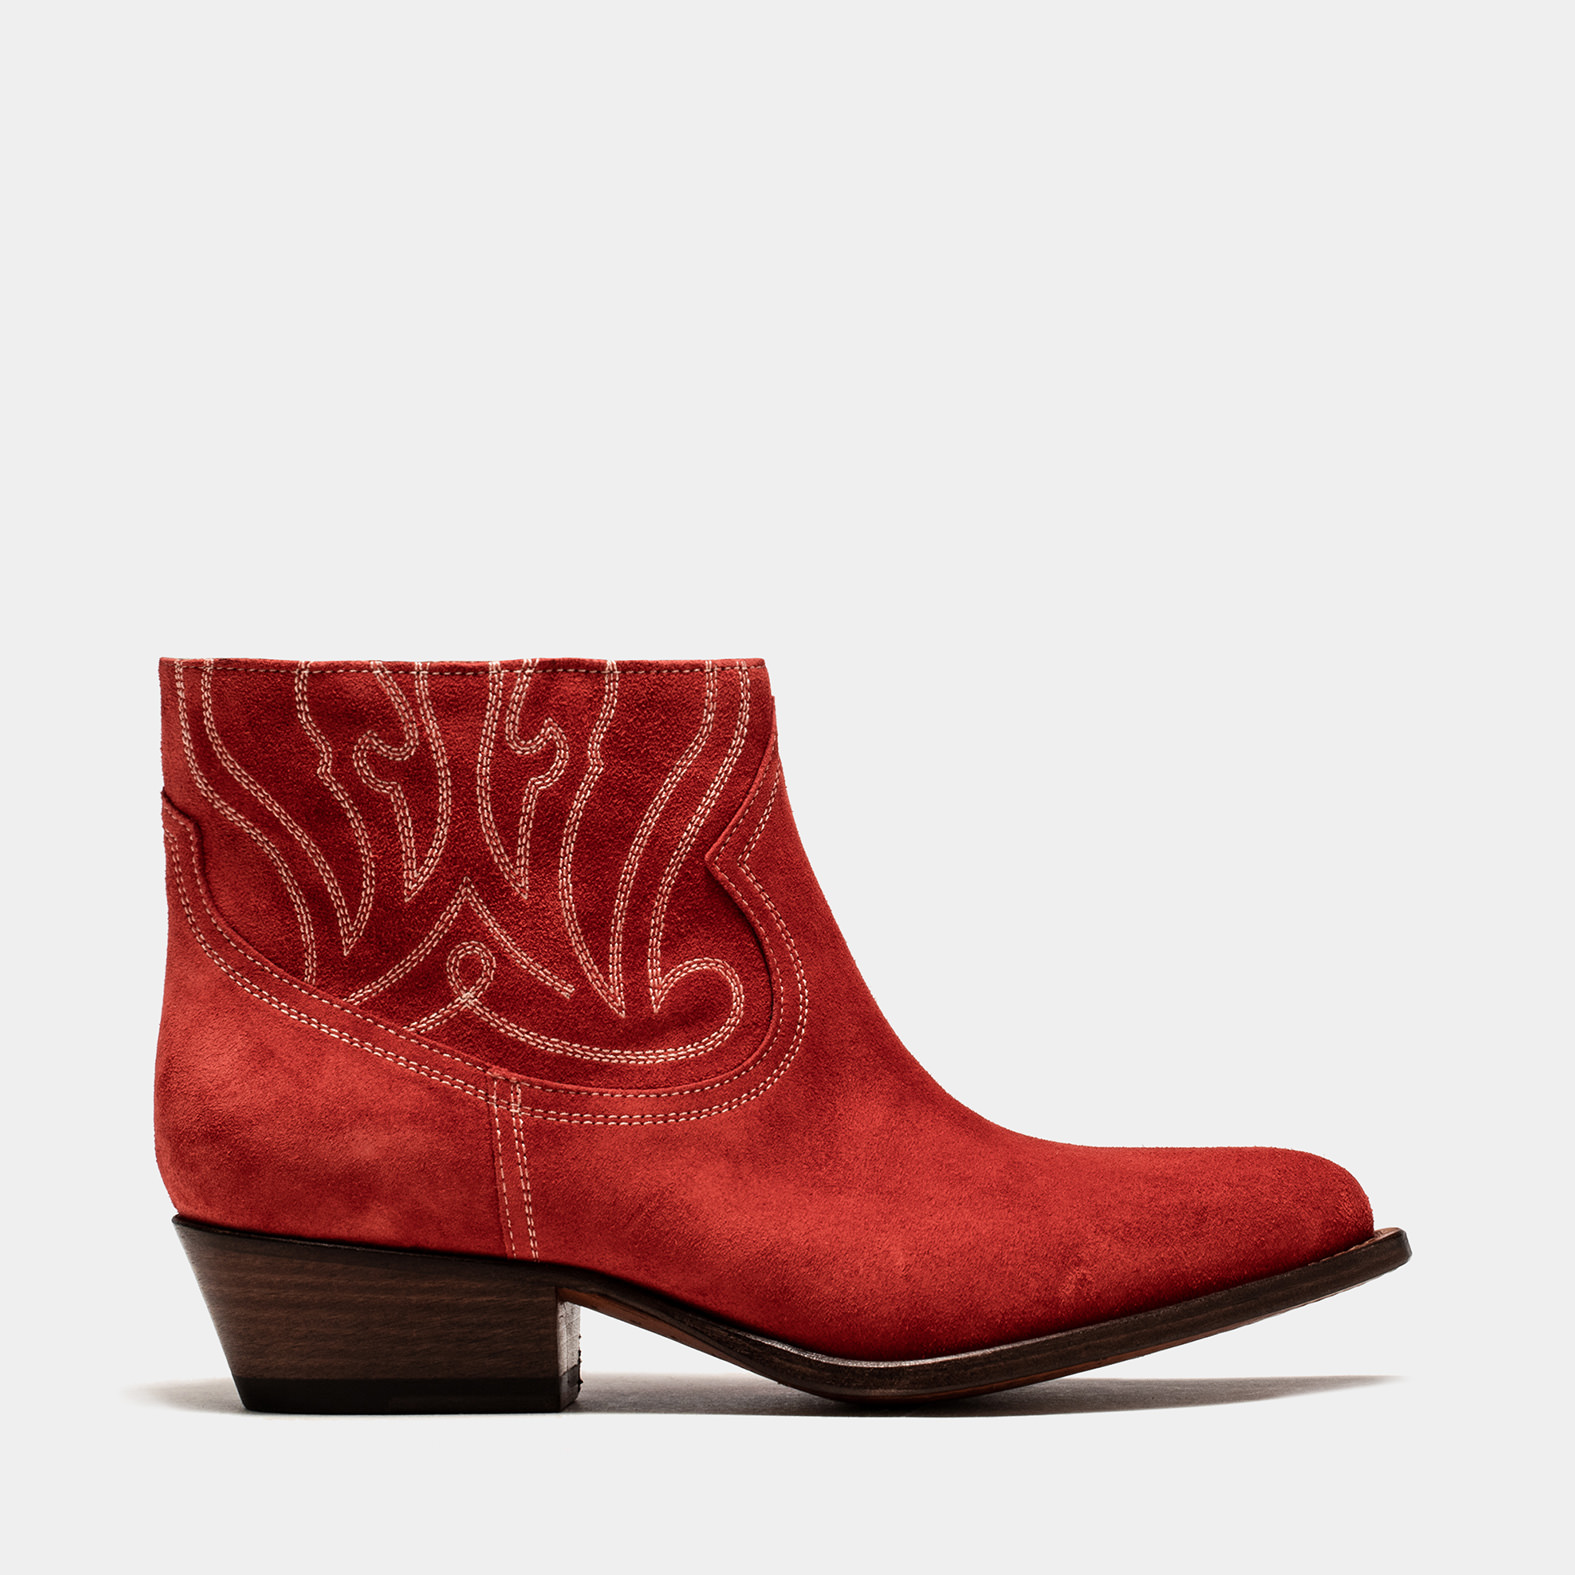 BUTTERO: RUBY SUEDE TRES LOW TOP DURANGO BOOTS